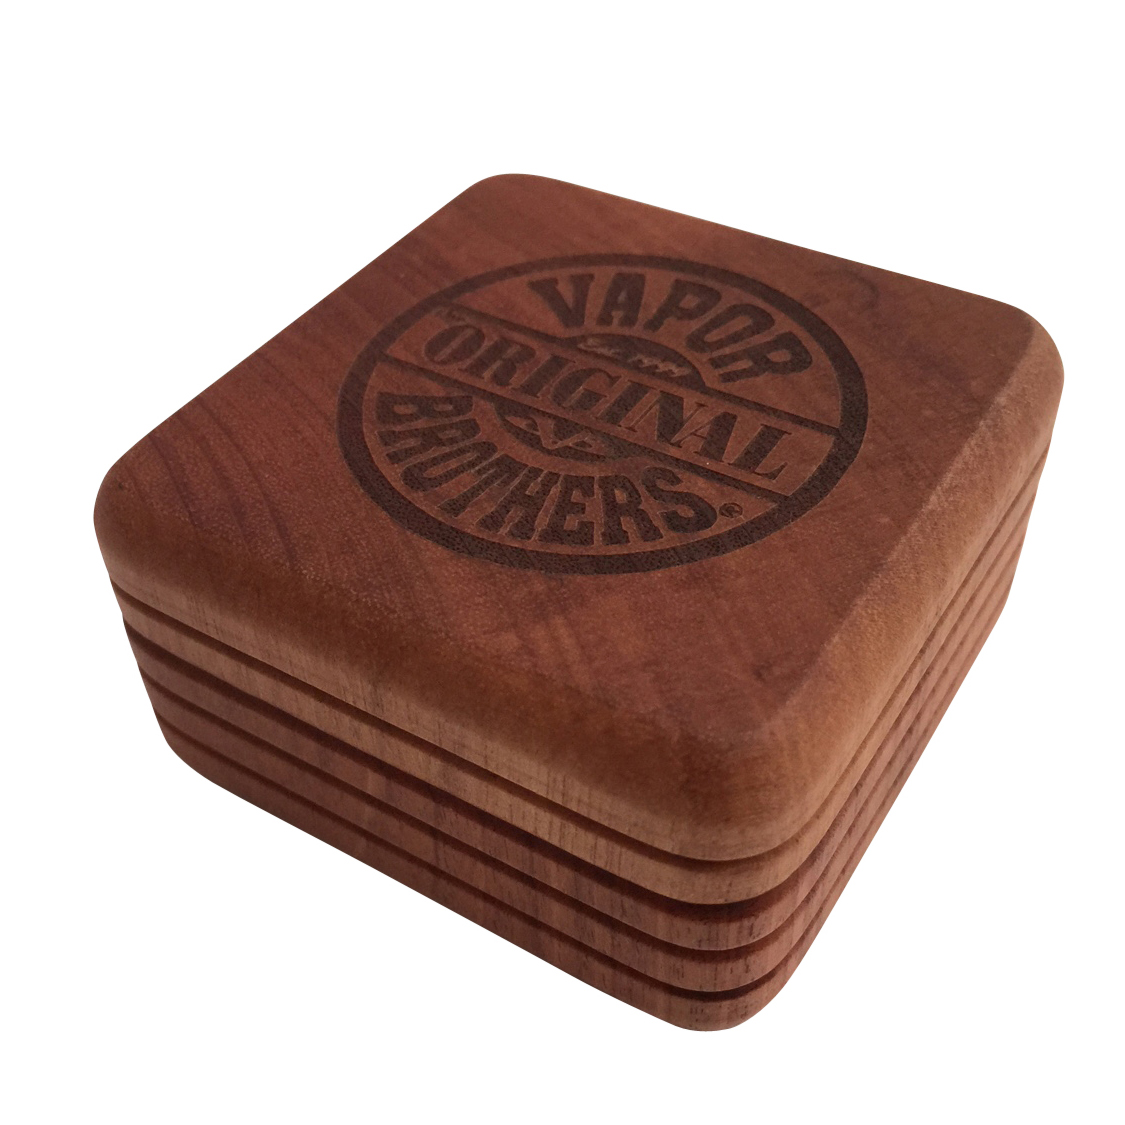 Vaporbrothers 2 pc All-Hardwood 2 Inch Magnetic Grinder - Limited Edition with Ryot